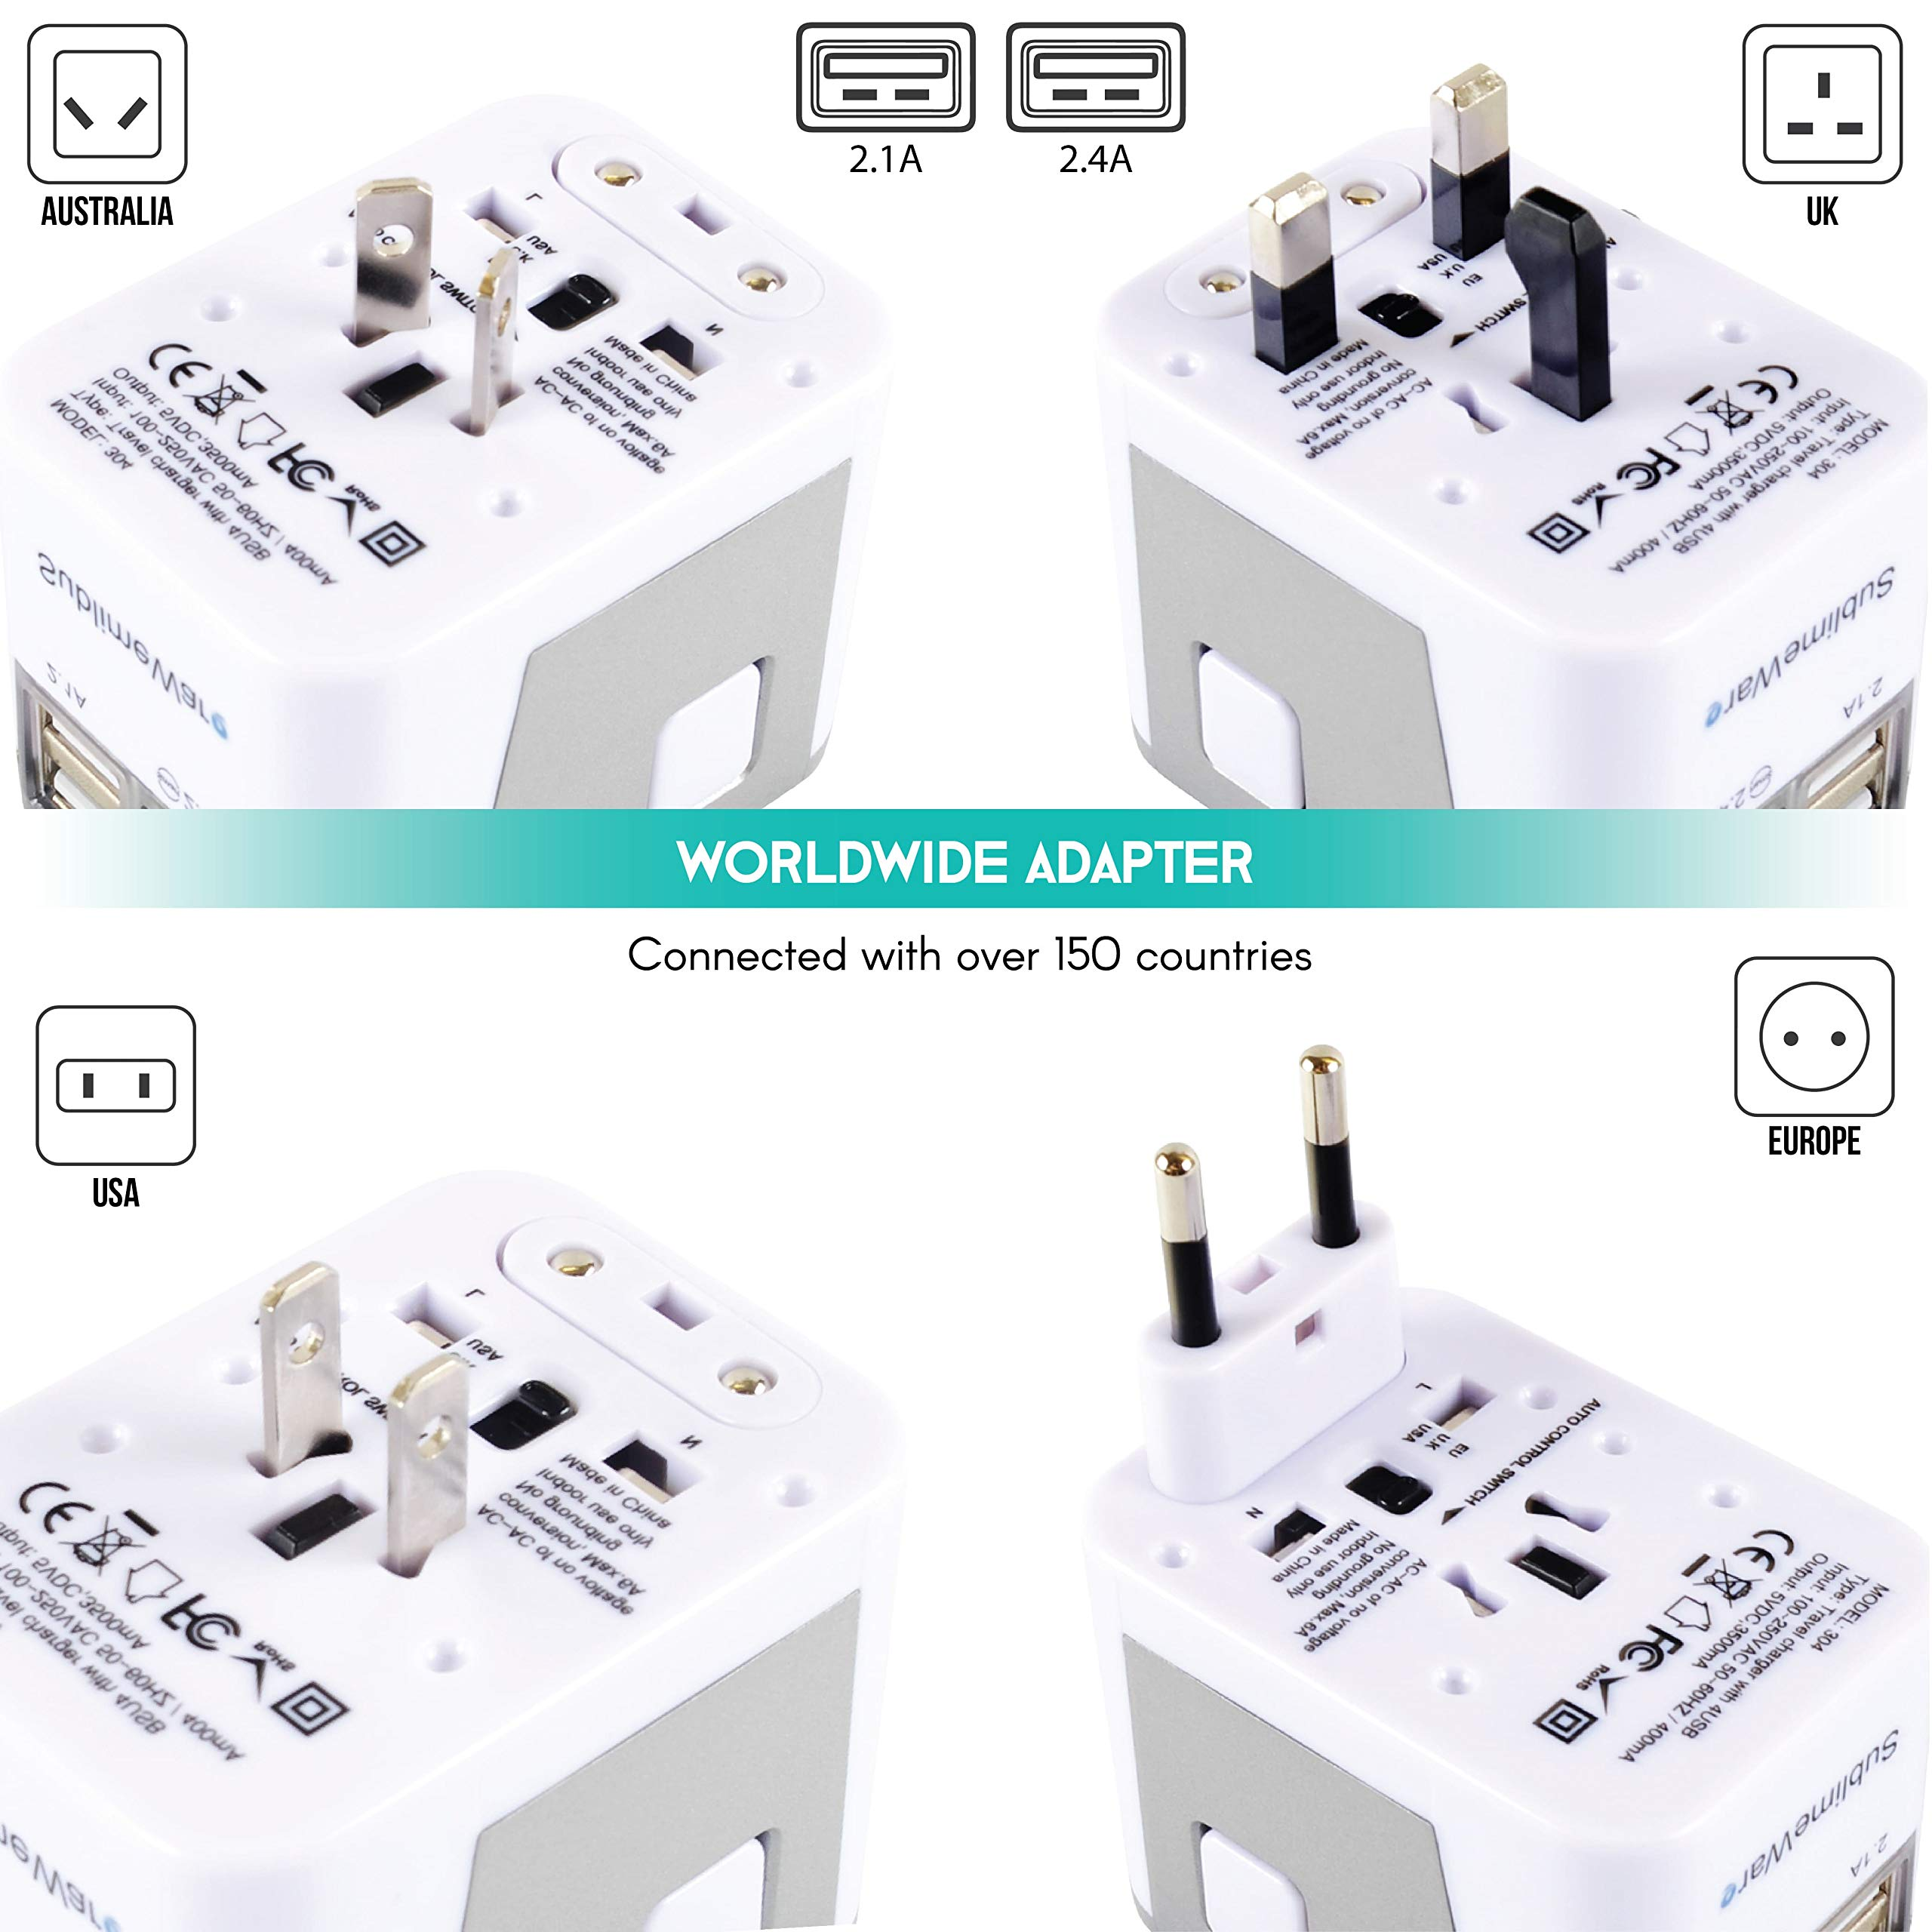 Power Plug Adapter - International Travel - (Pack of 2) w/4 USB Ports Work for 150+ Countries - 220 Volt Adapter - Travel Adapter Type C Type A Type G Type I f for UK Japan China EU Europe European by   SublimeWare   (Image #3)